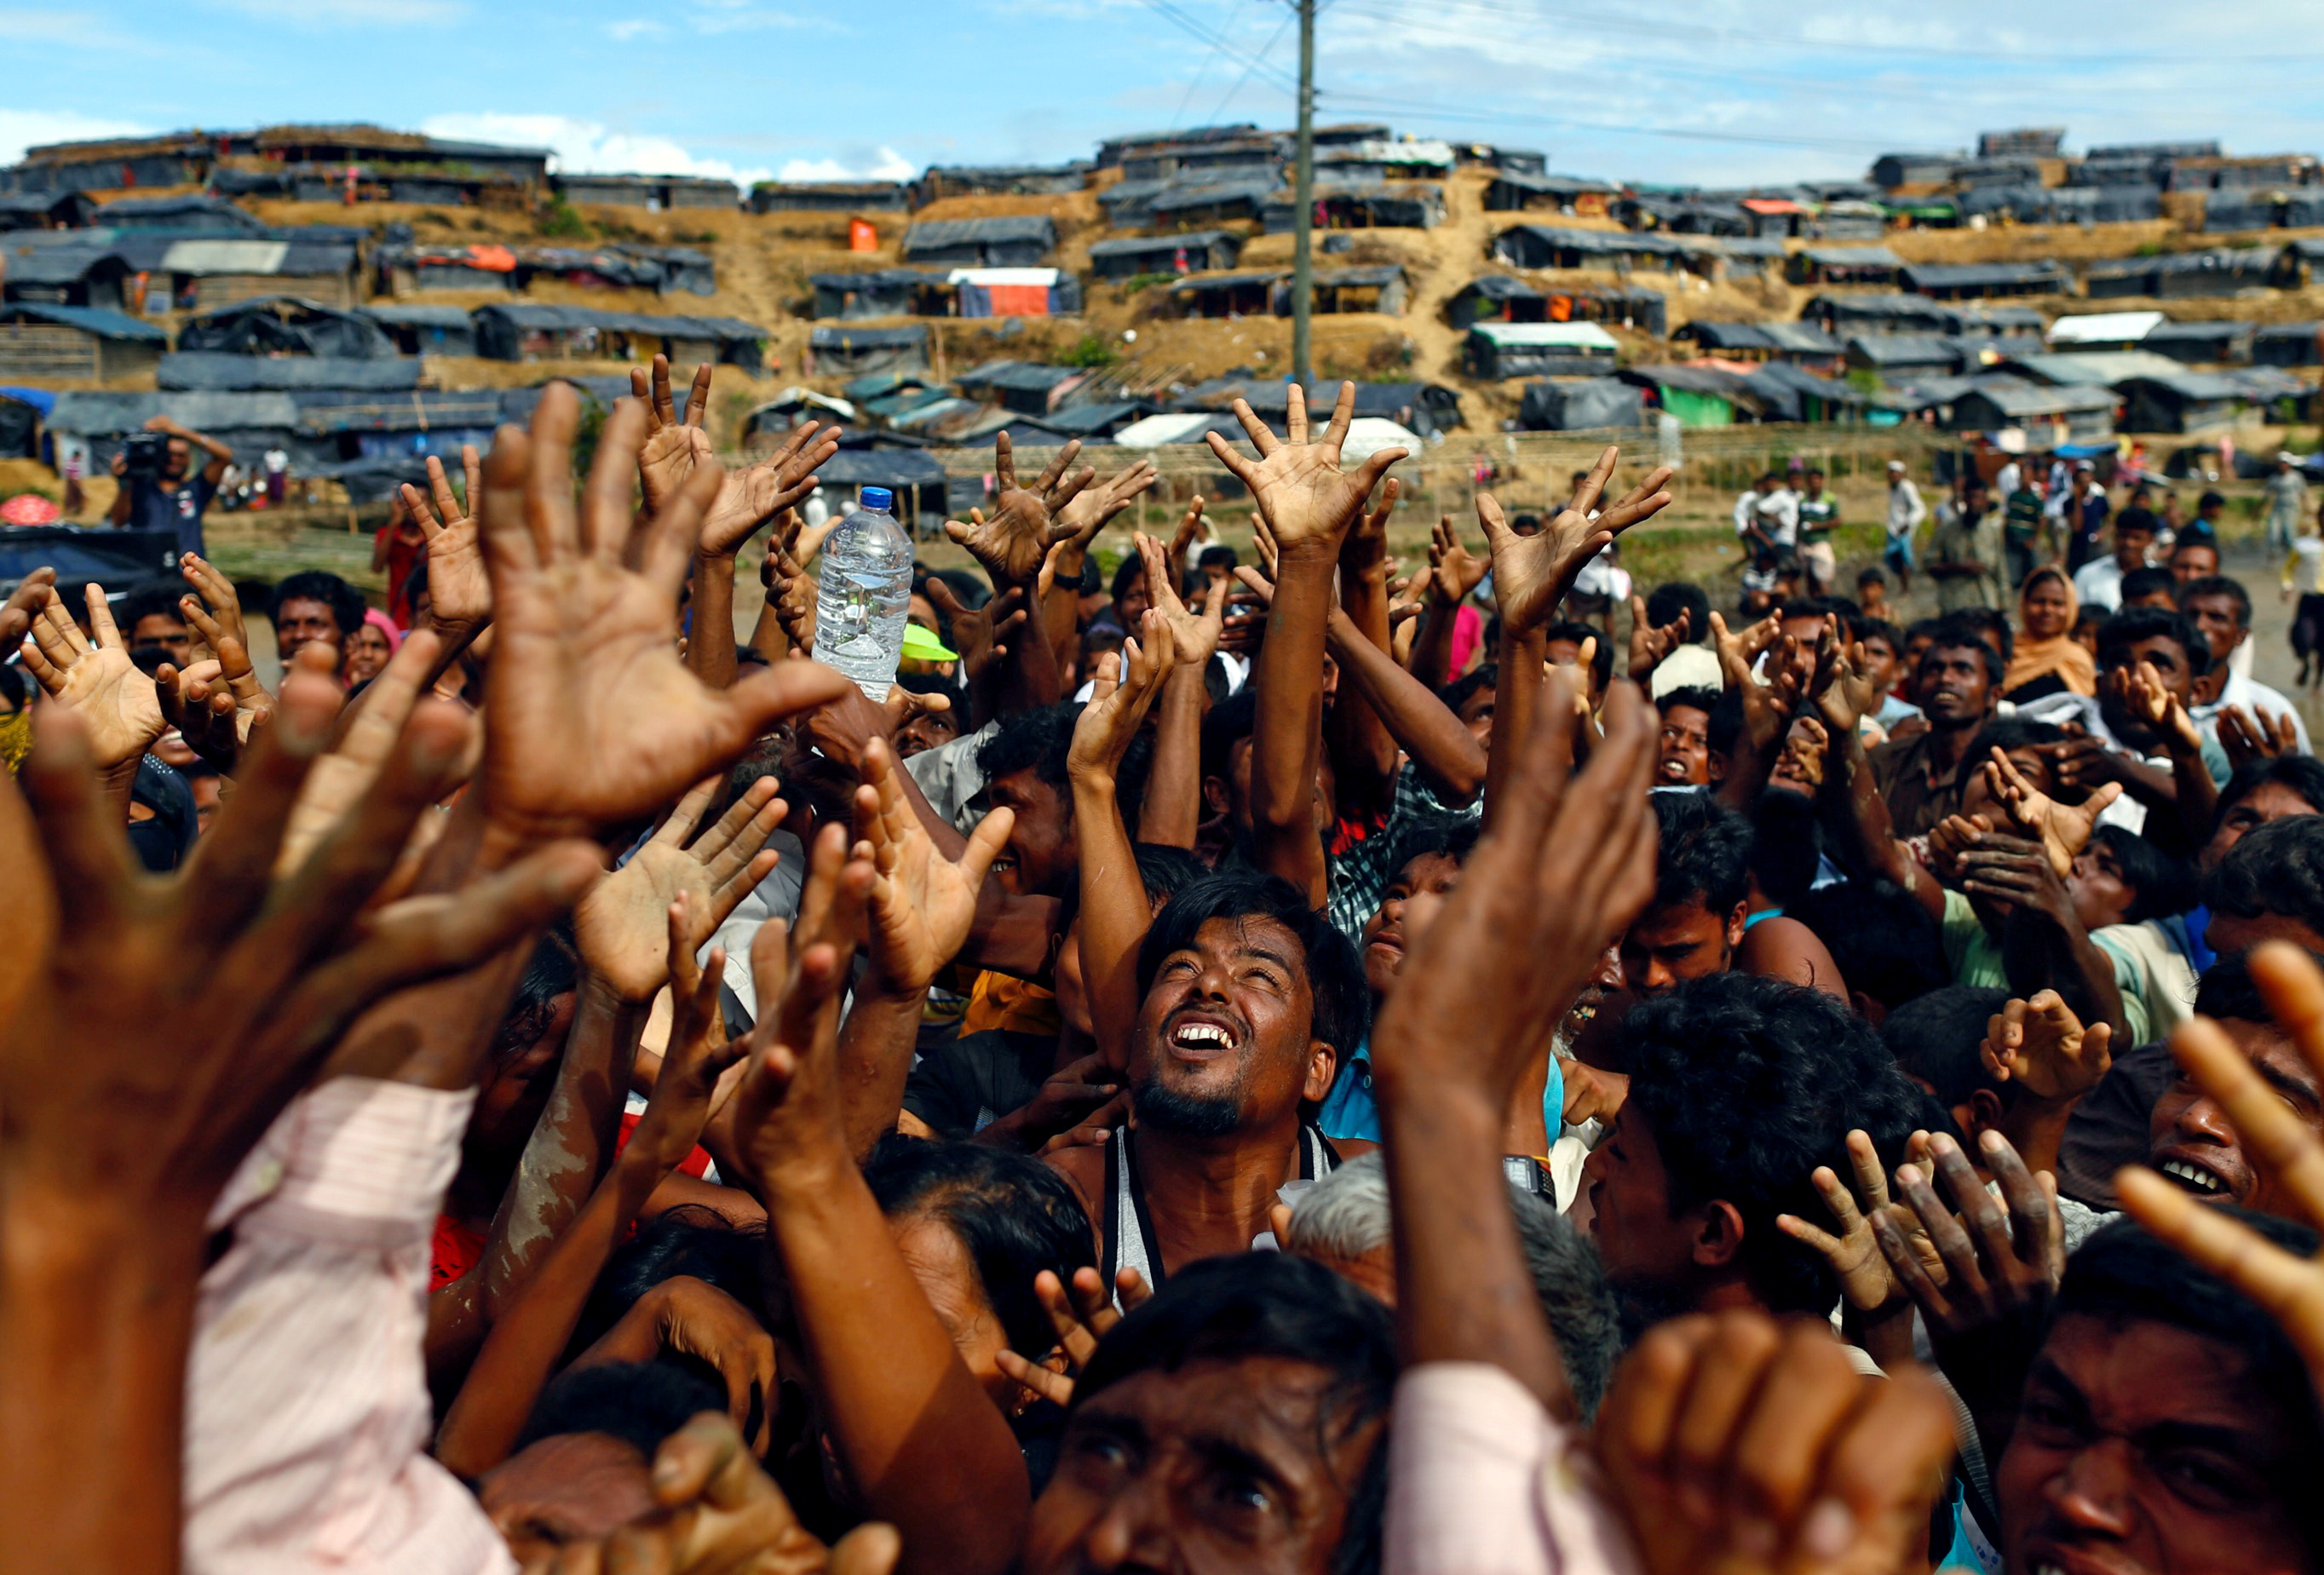 Rohingya refugees stretch their hands to receive aid at a camp in Cox's Bazar in Bangladesh. (Credit: Danish Siddiqui / Reuters)